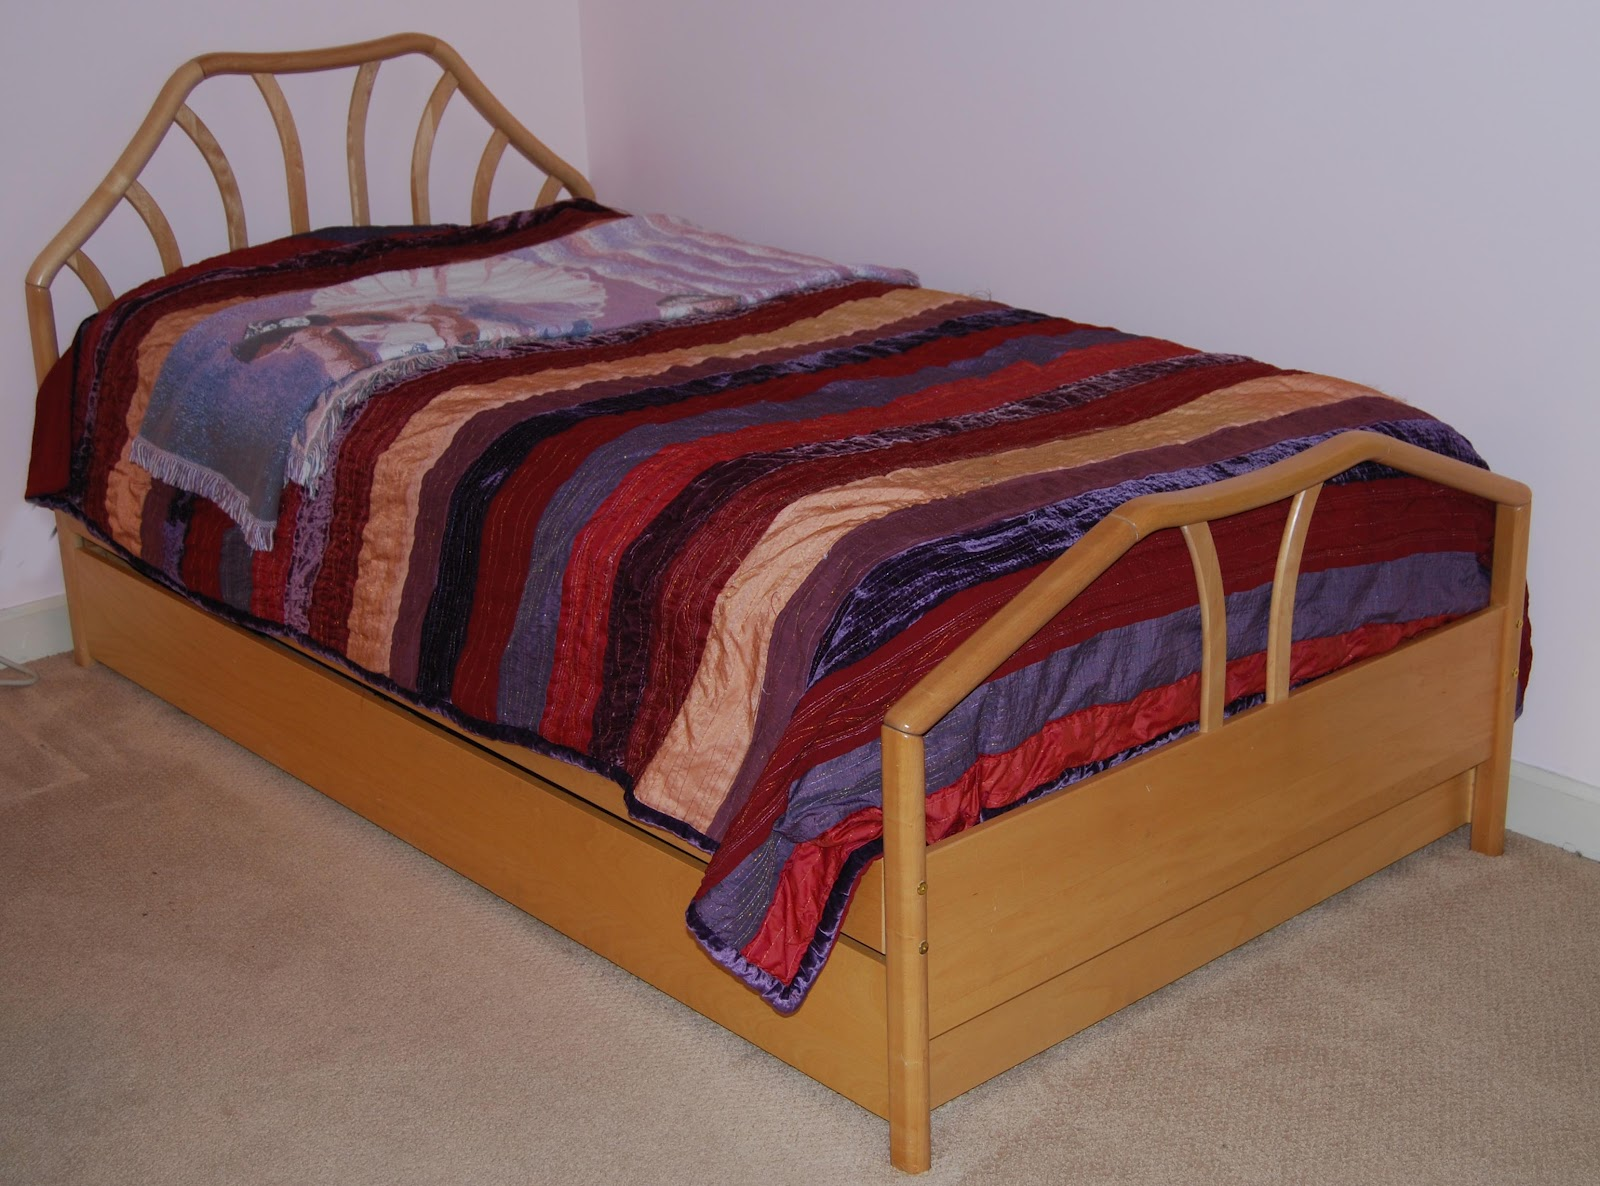 Furniture for sale for 2 twin beds for sale